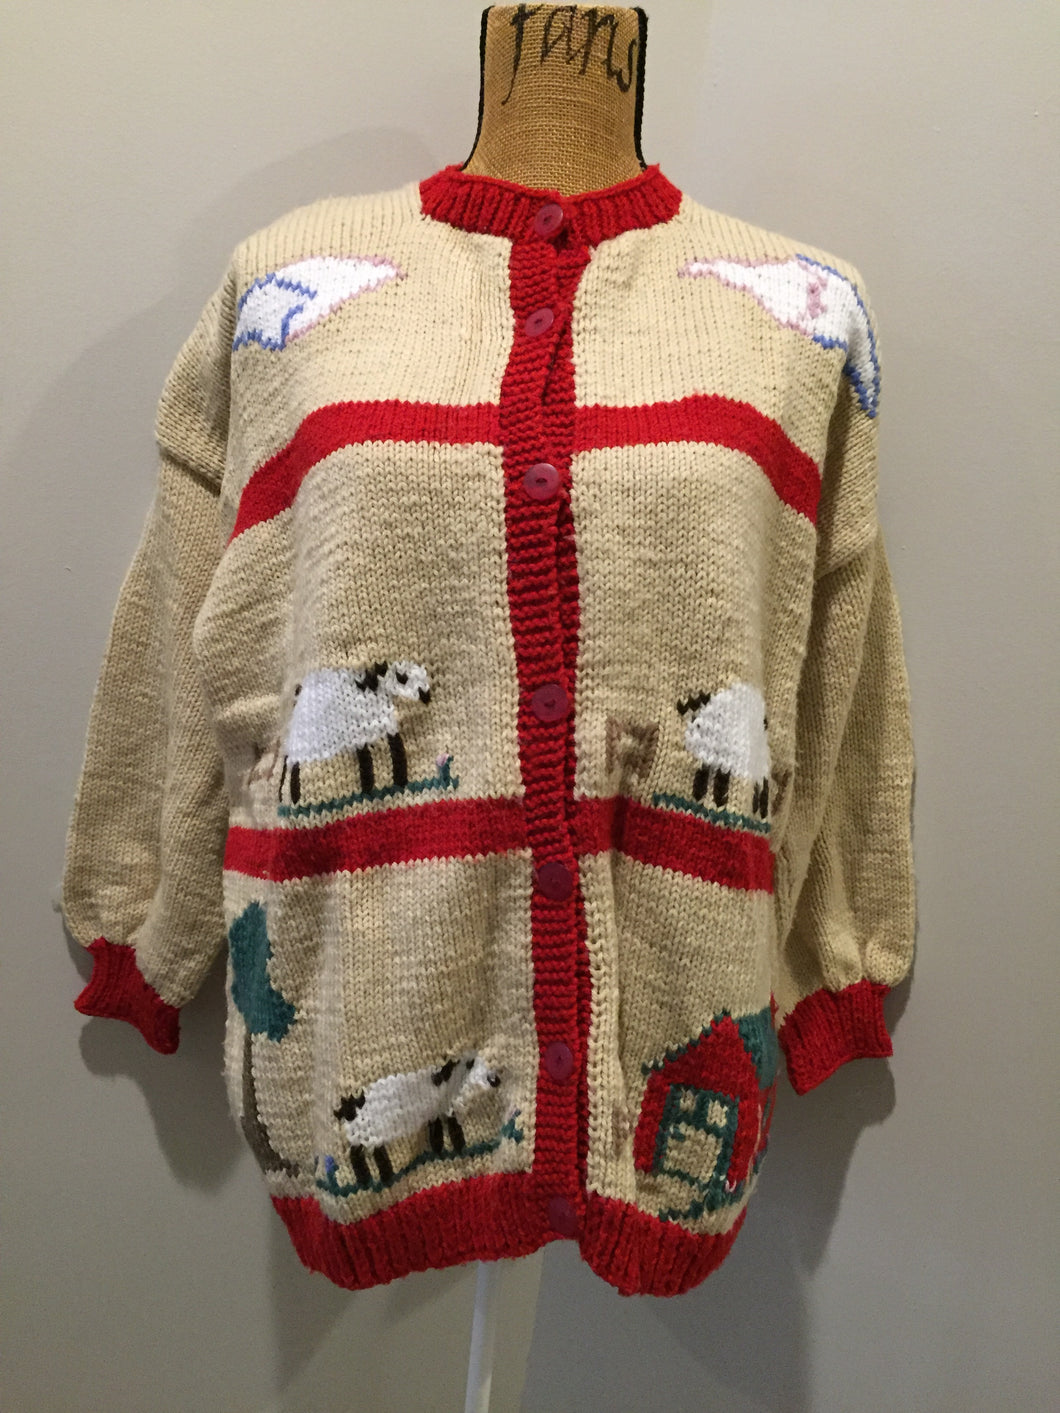 Kingspier Vintage - Hand knit cardigan in beige and red with sheep motif and buttons. Made with synthetic fibers.